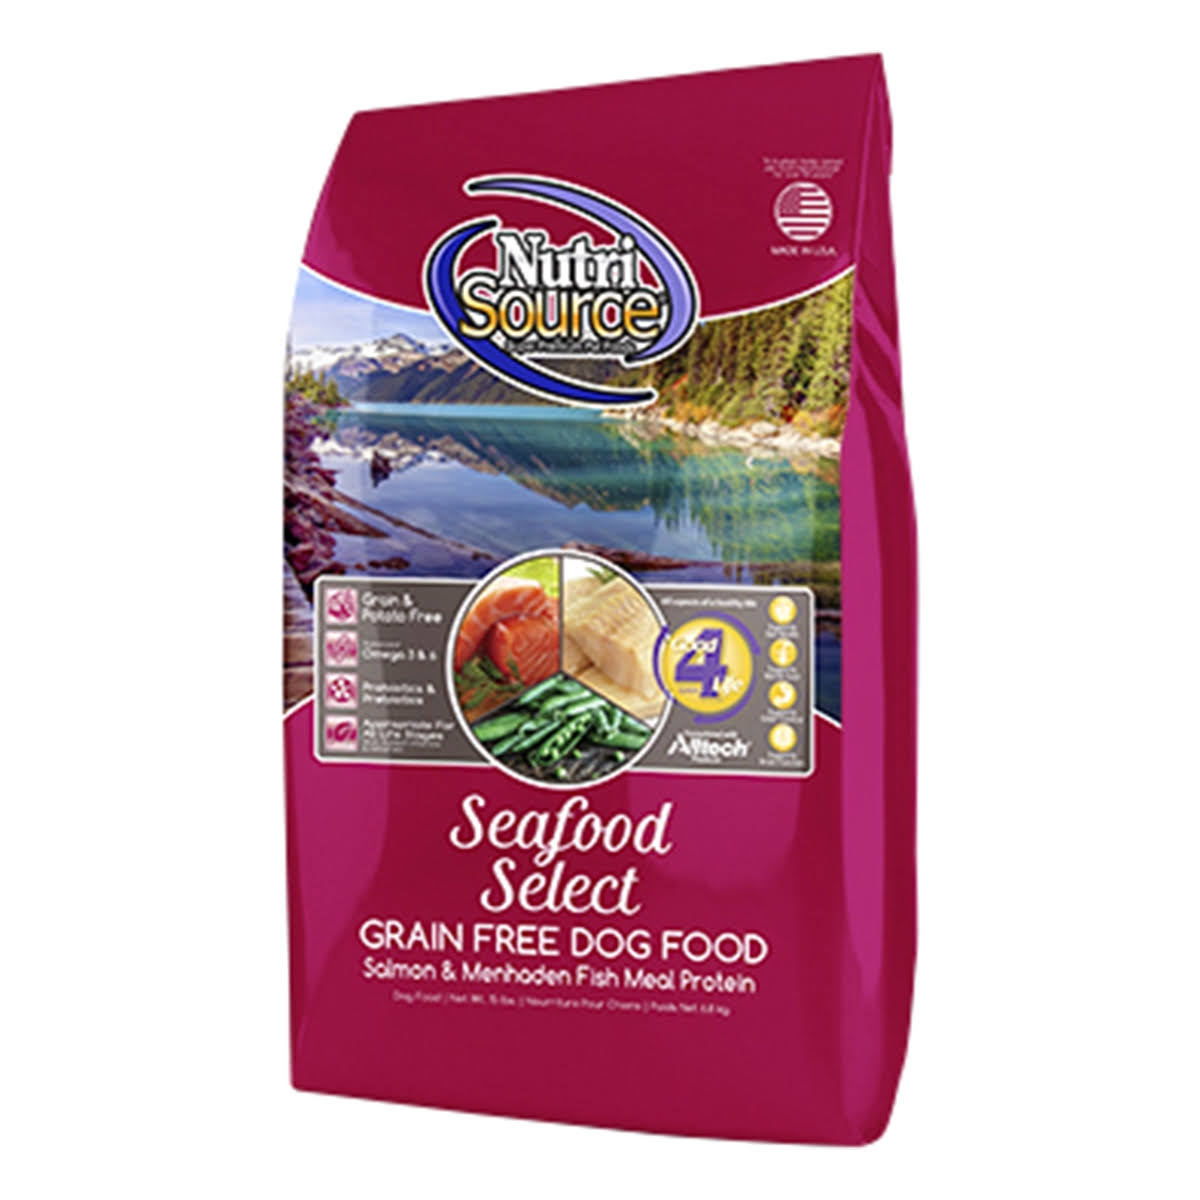 NutriSource Seafood Select Grain Free Dog Food 30 lbs